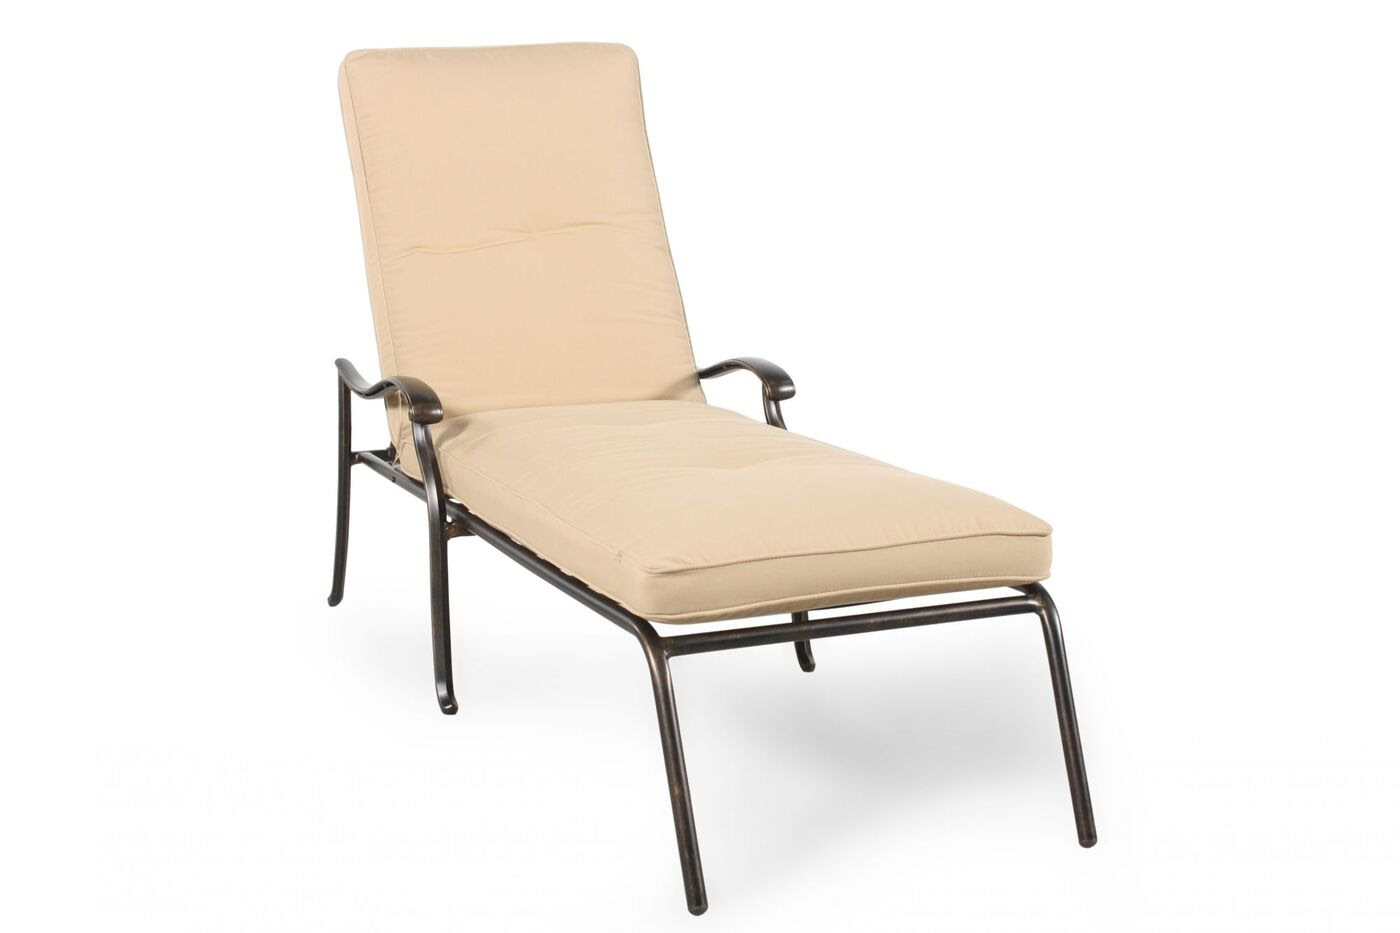 Agio Heritage Select Patio Chaise Lounge | Mathis Brothers ...